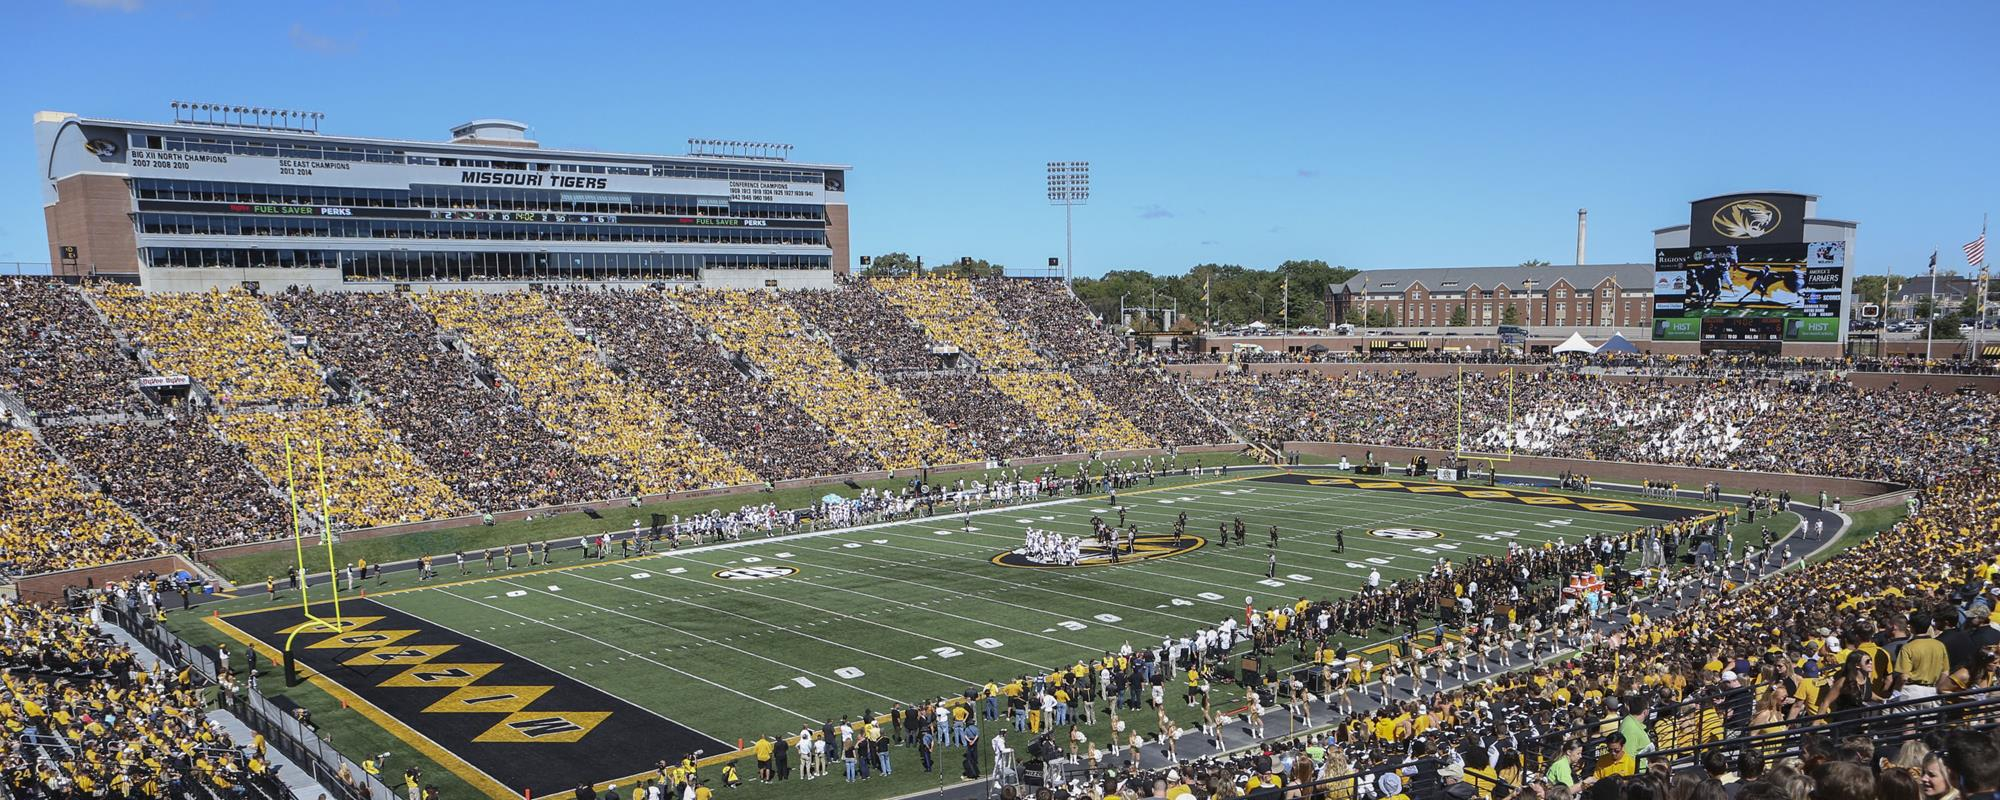 Memorial Stadium Faurot Field Tiger Stripe 2015 & MizzouFootball Spring Game Slated for Saturday Evening ...